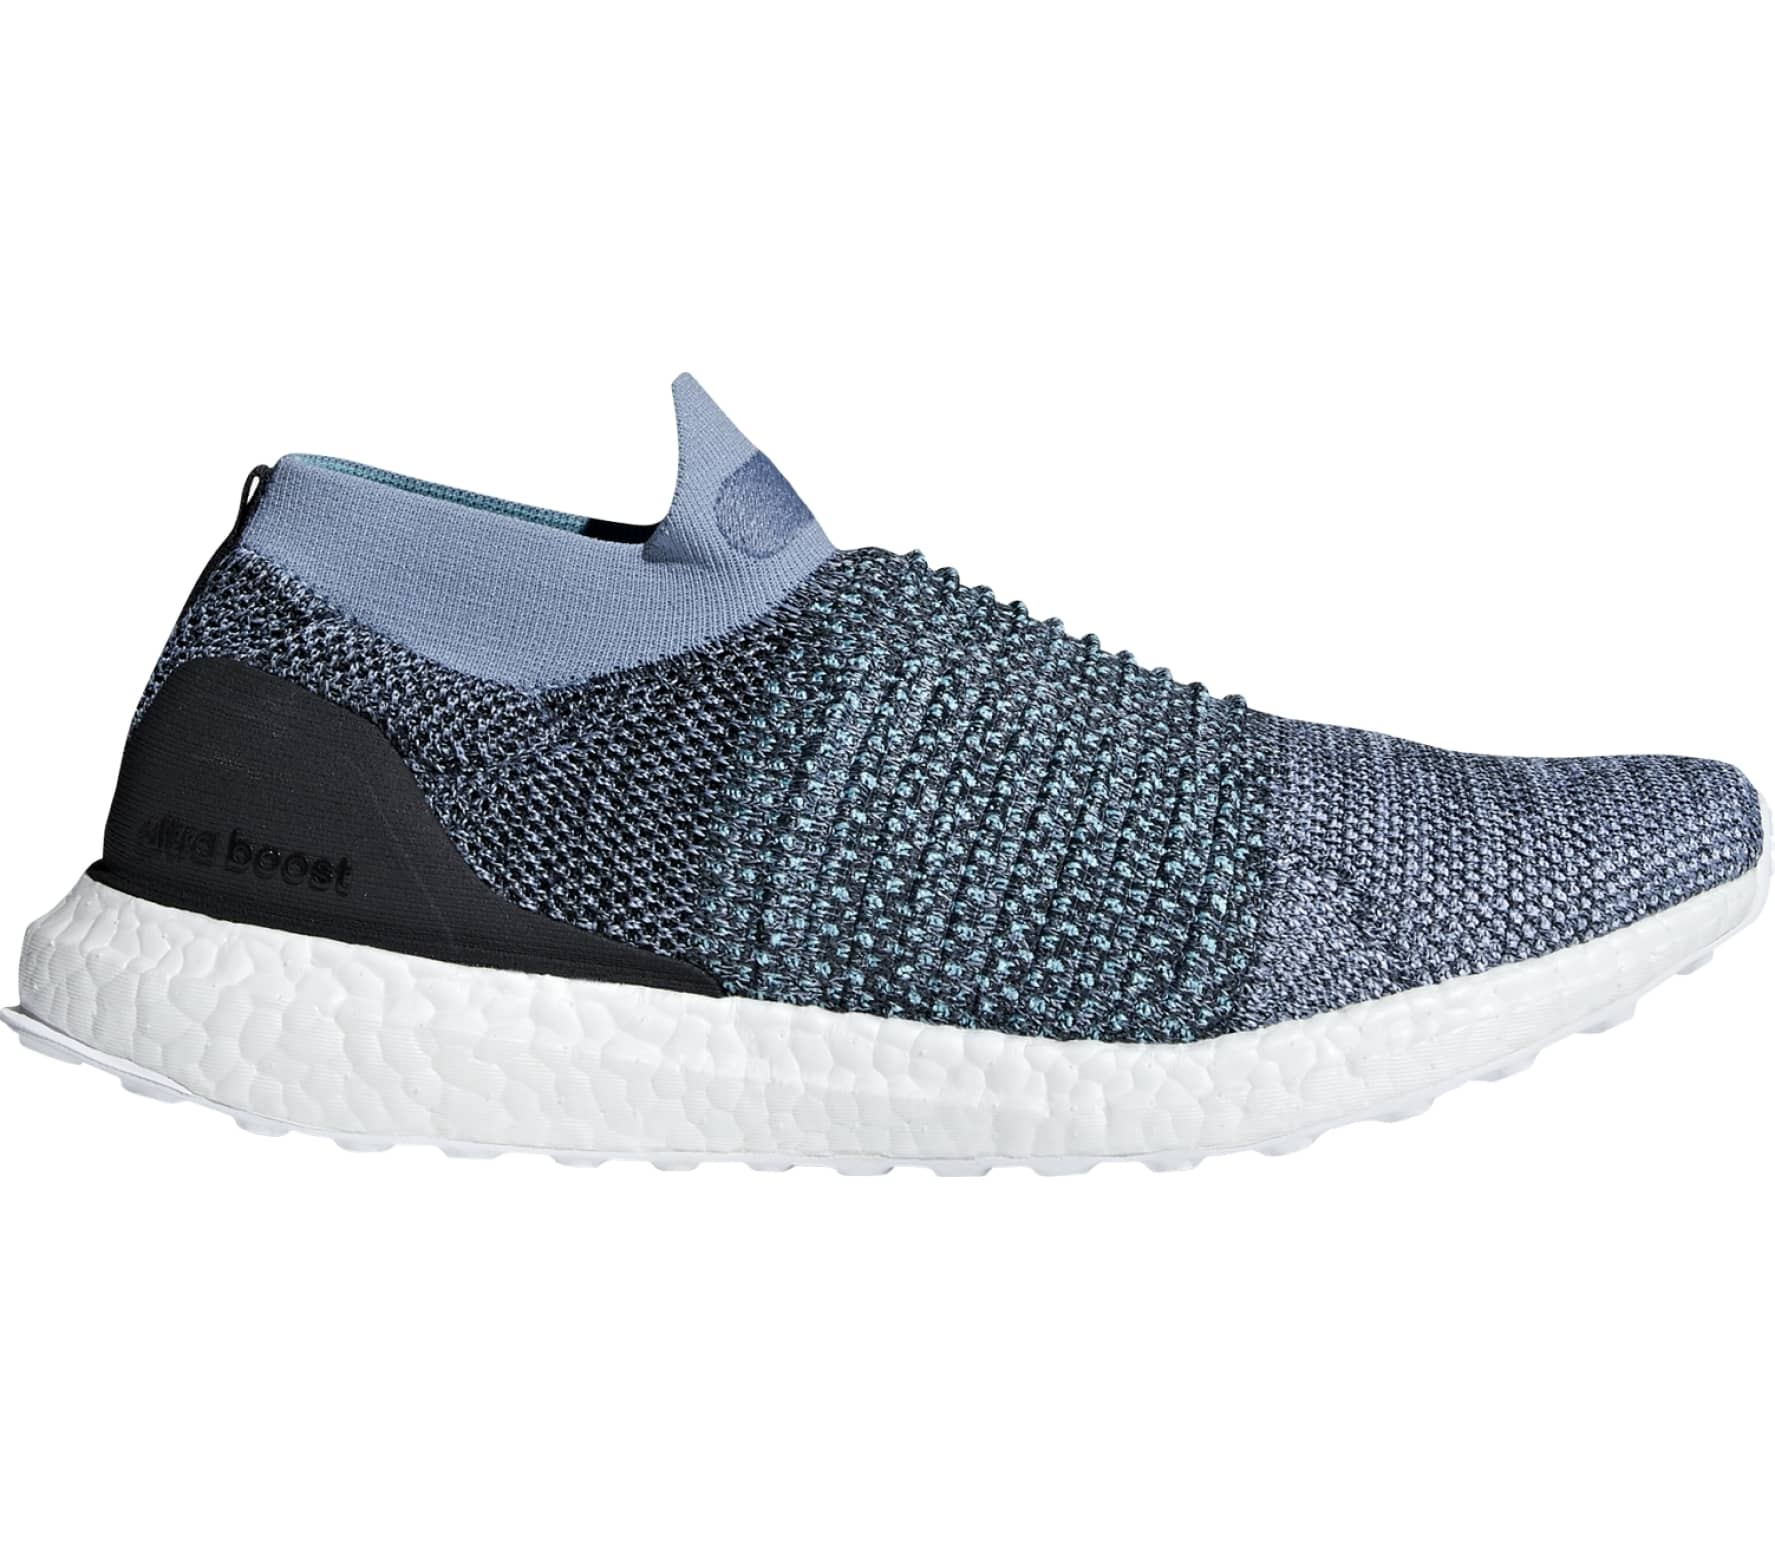 3b5a9f94c Adidas - UltraBOOST Laceless Parley men s running shoes (blue) - buy ...